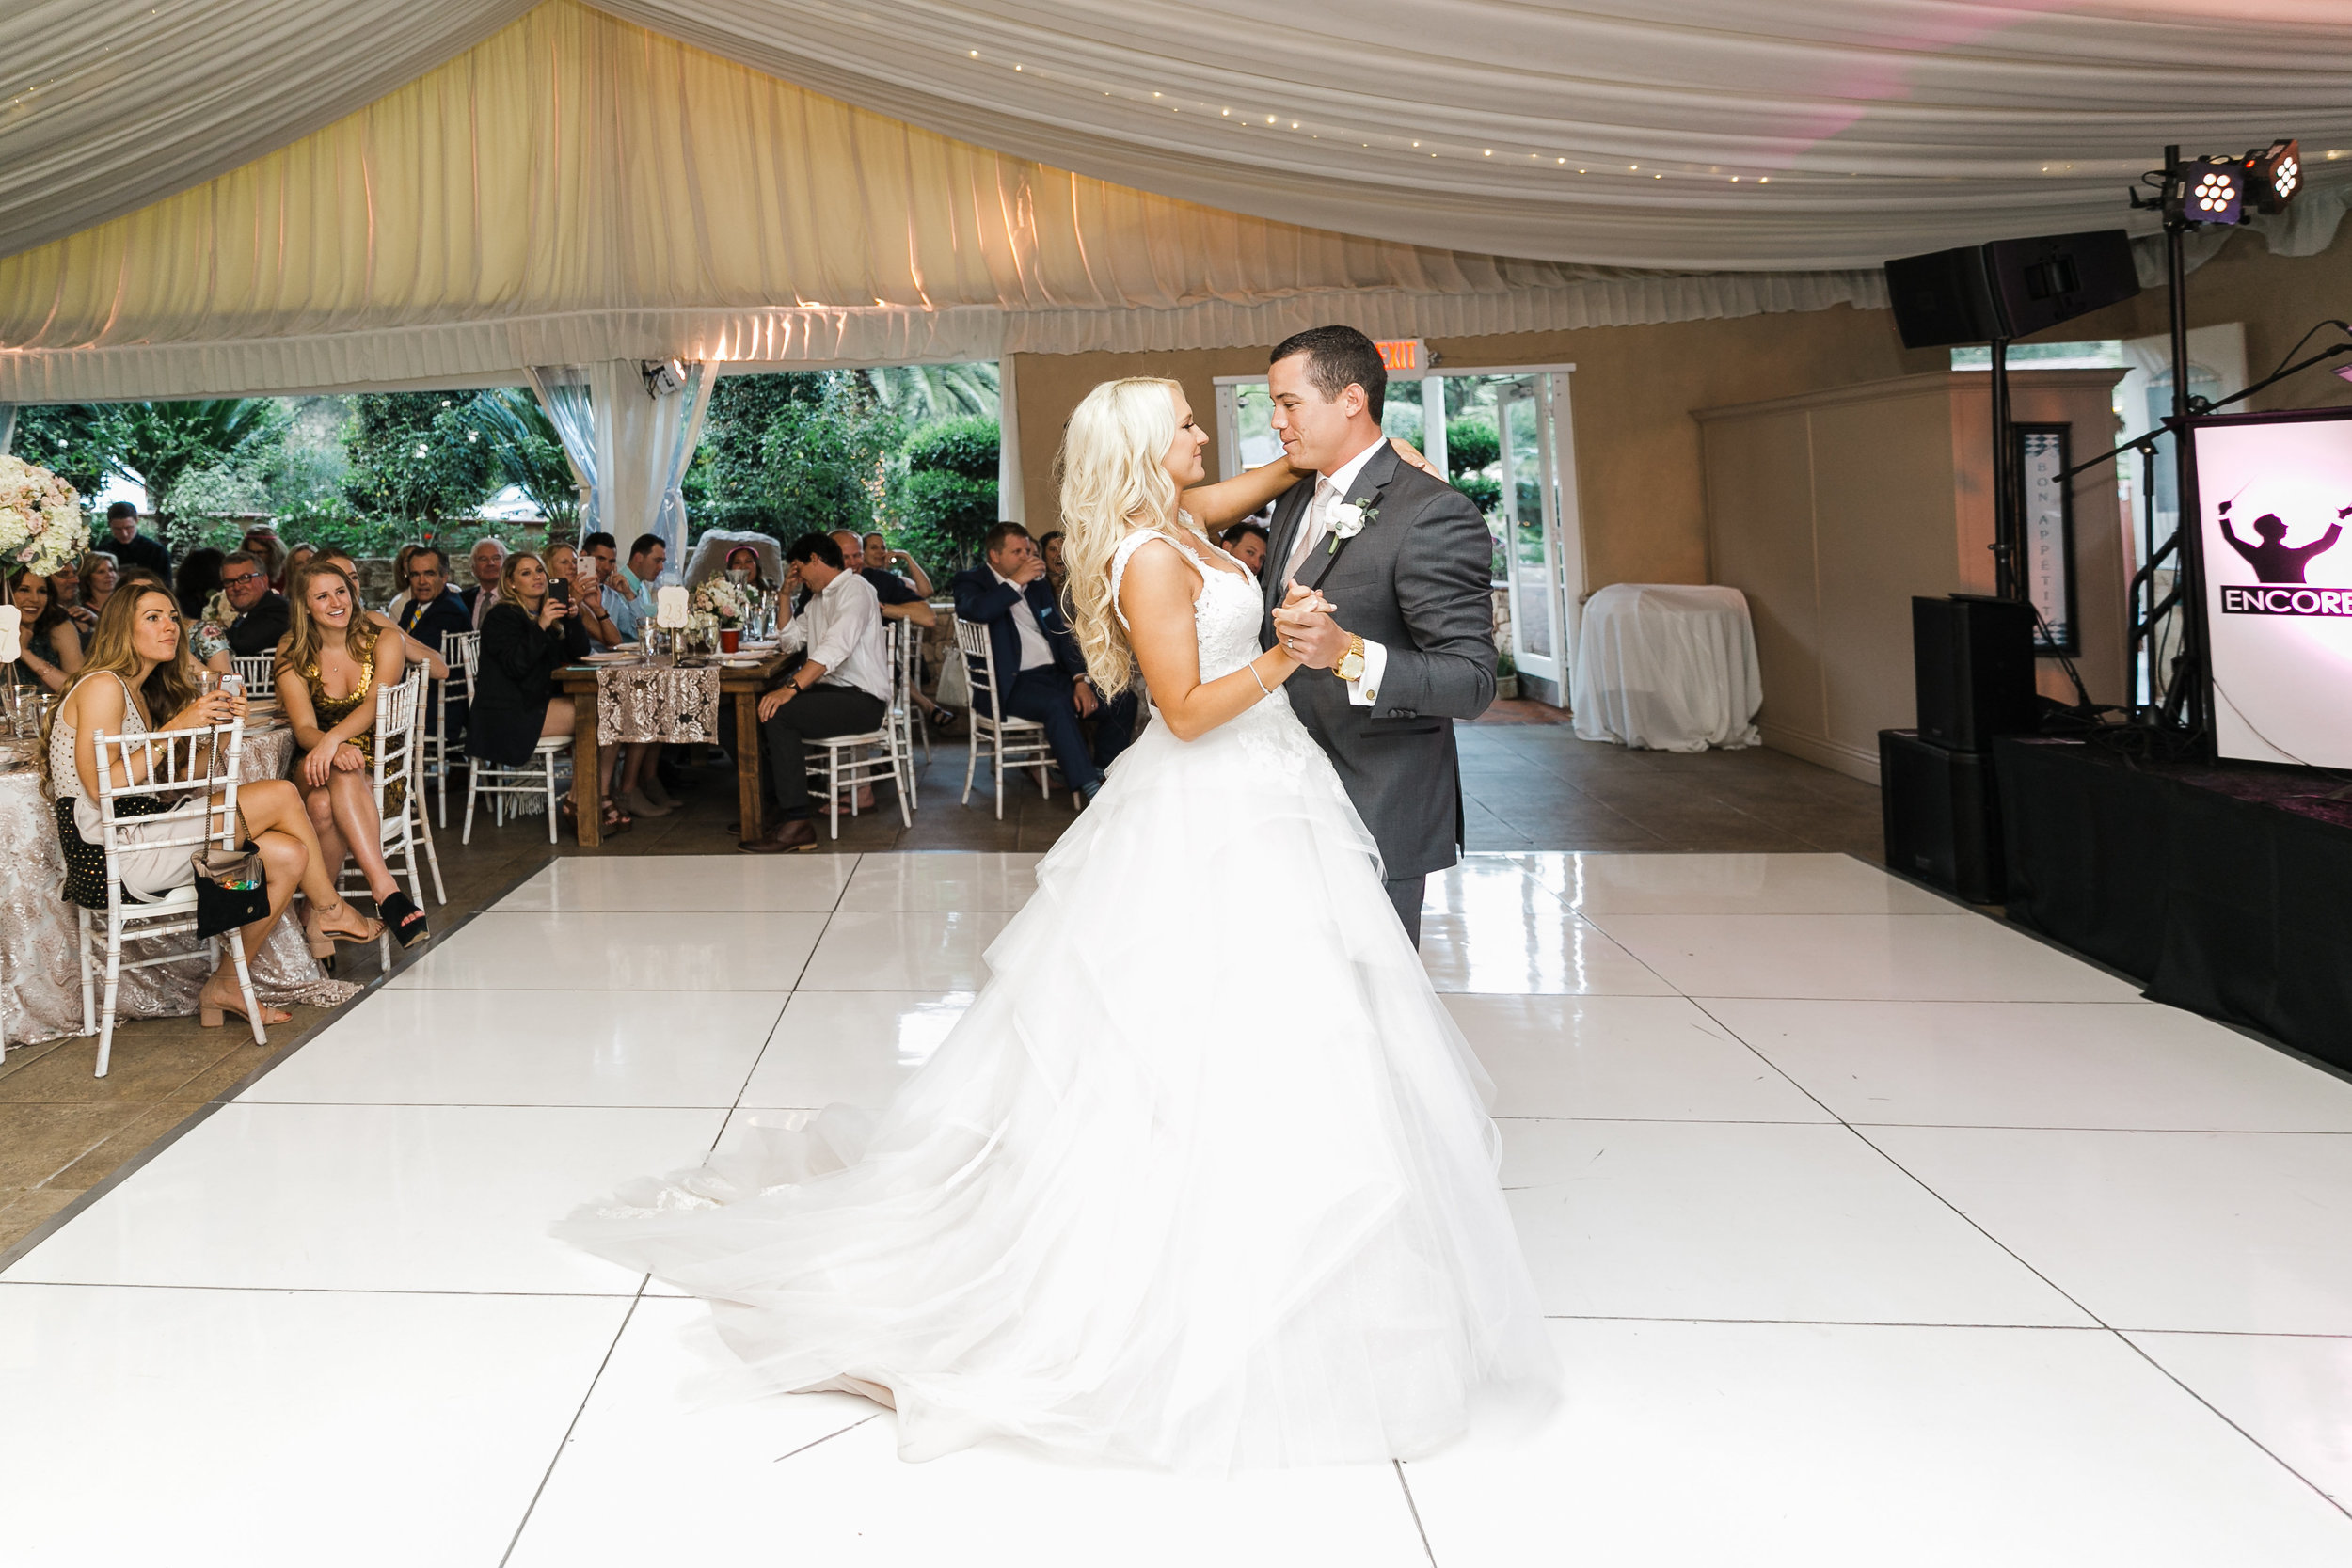 NFL Player Wedding in White and Blush | Leah Marie Photography | Michelle Garibay Events